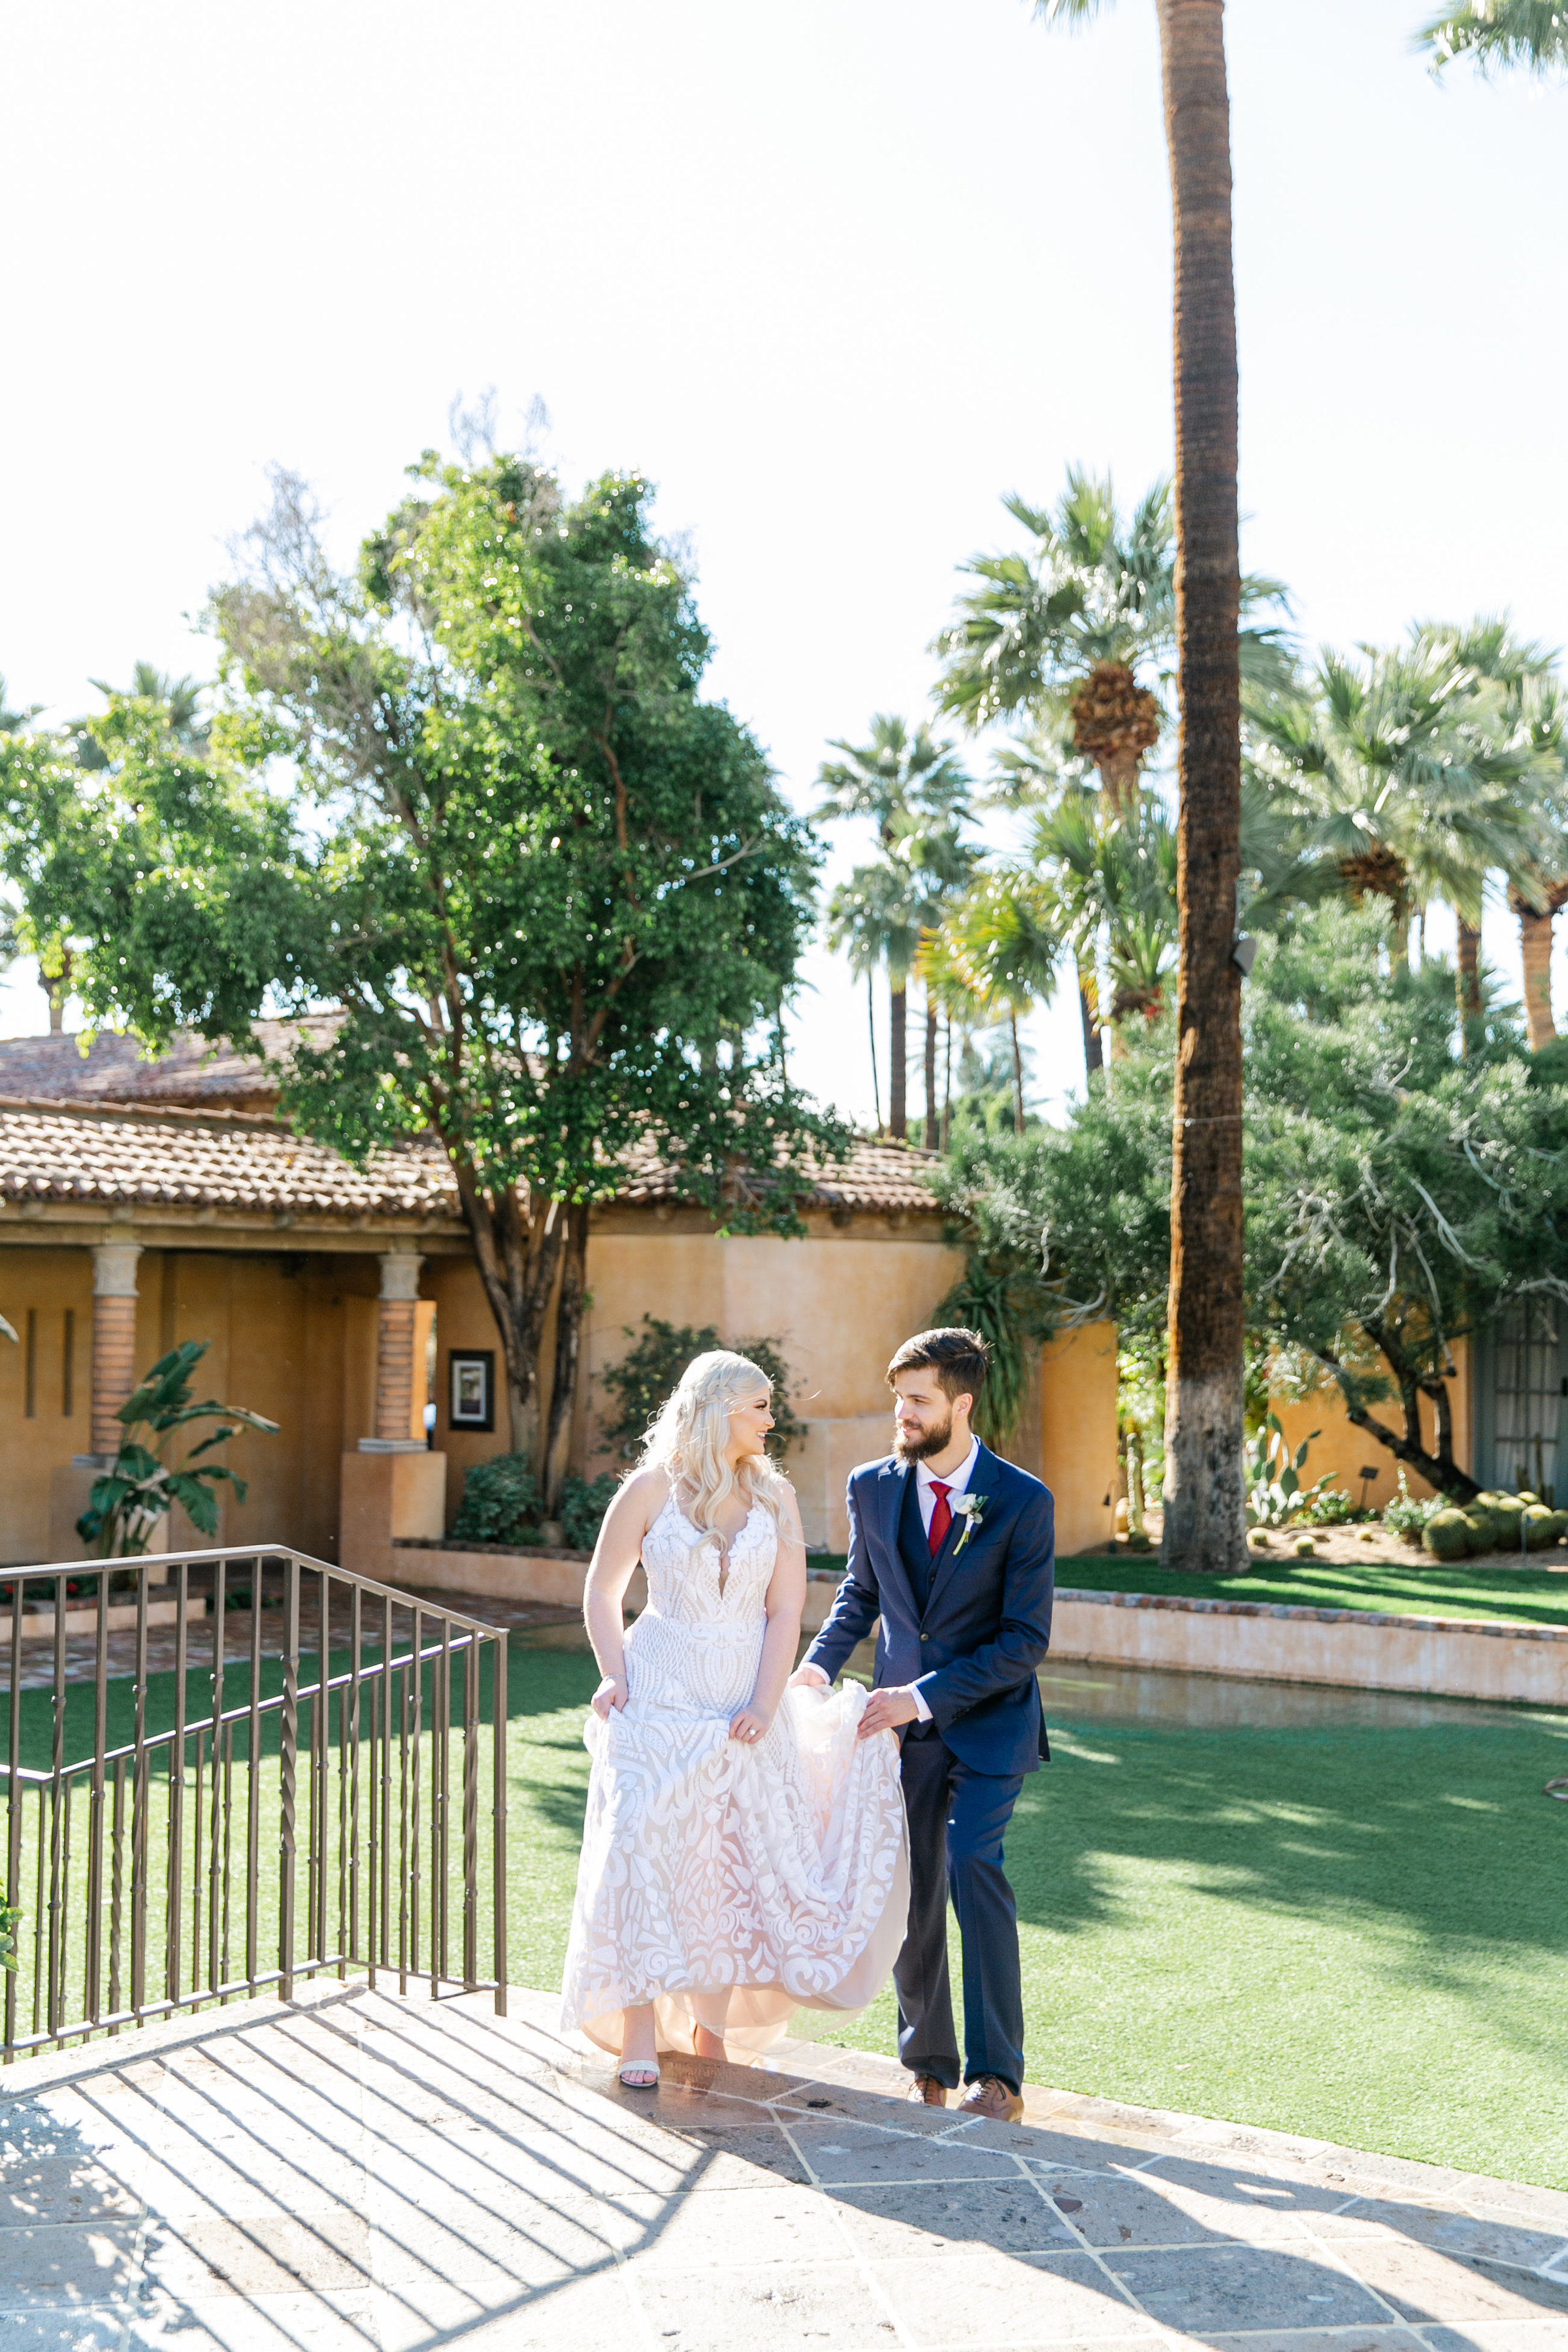 Karlie Colleen Photography - The Royal Palms Wedding - Some Like It Classic - Alex & Sam-177